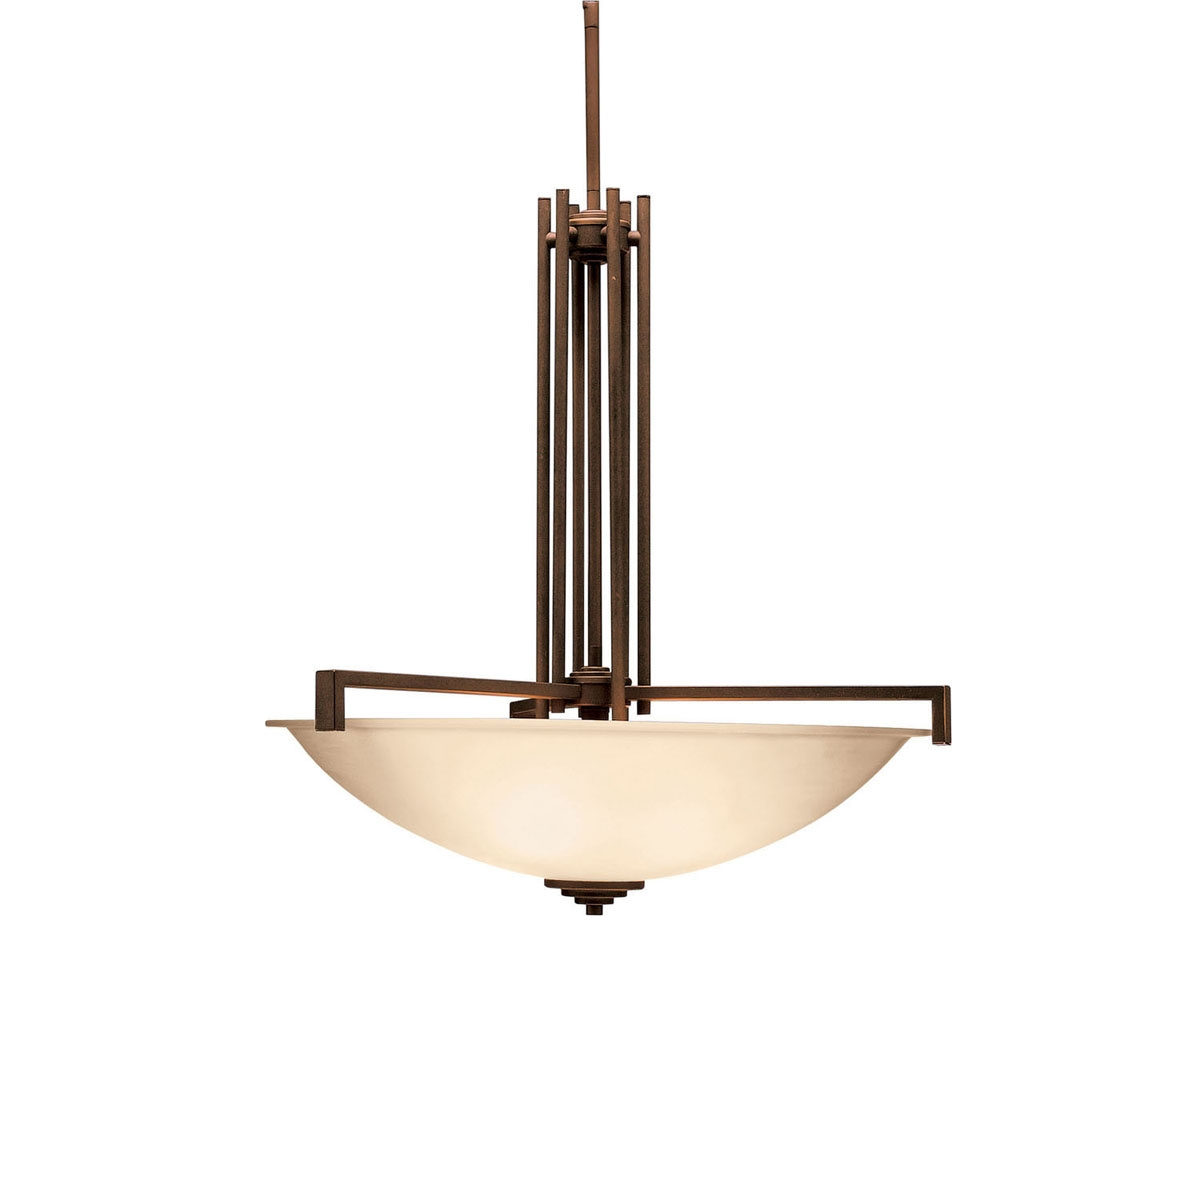 Contemporary 4 Light Inverted Pendant 3299ni Brushed Nickel In Inverted Pendant Chandeliers (Image 9 of 25)